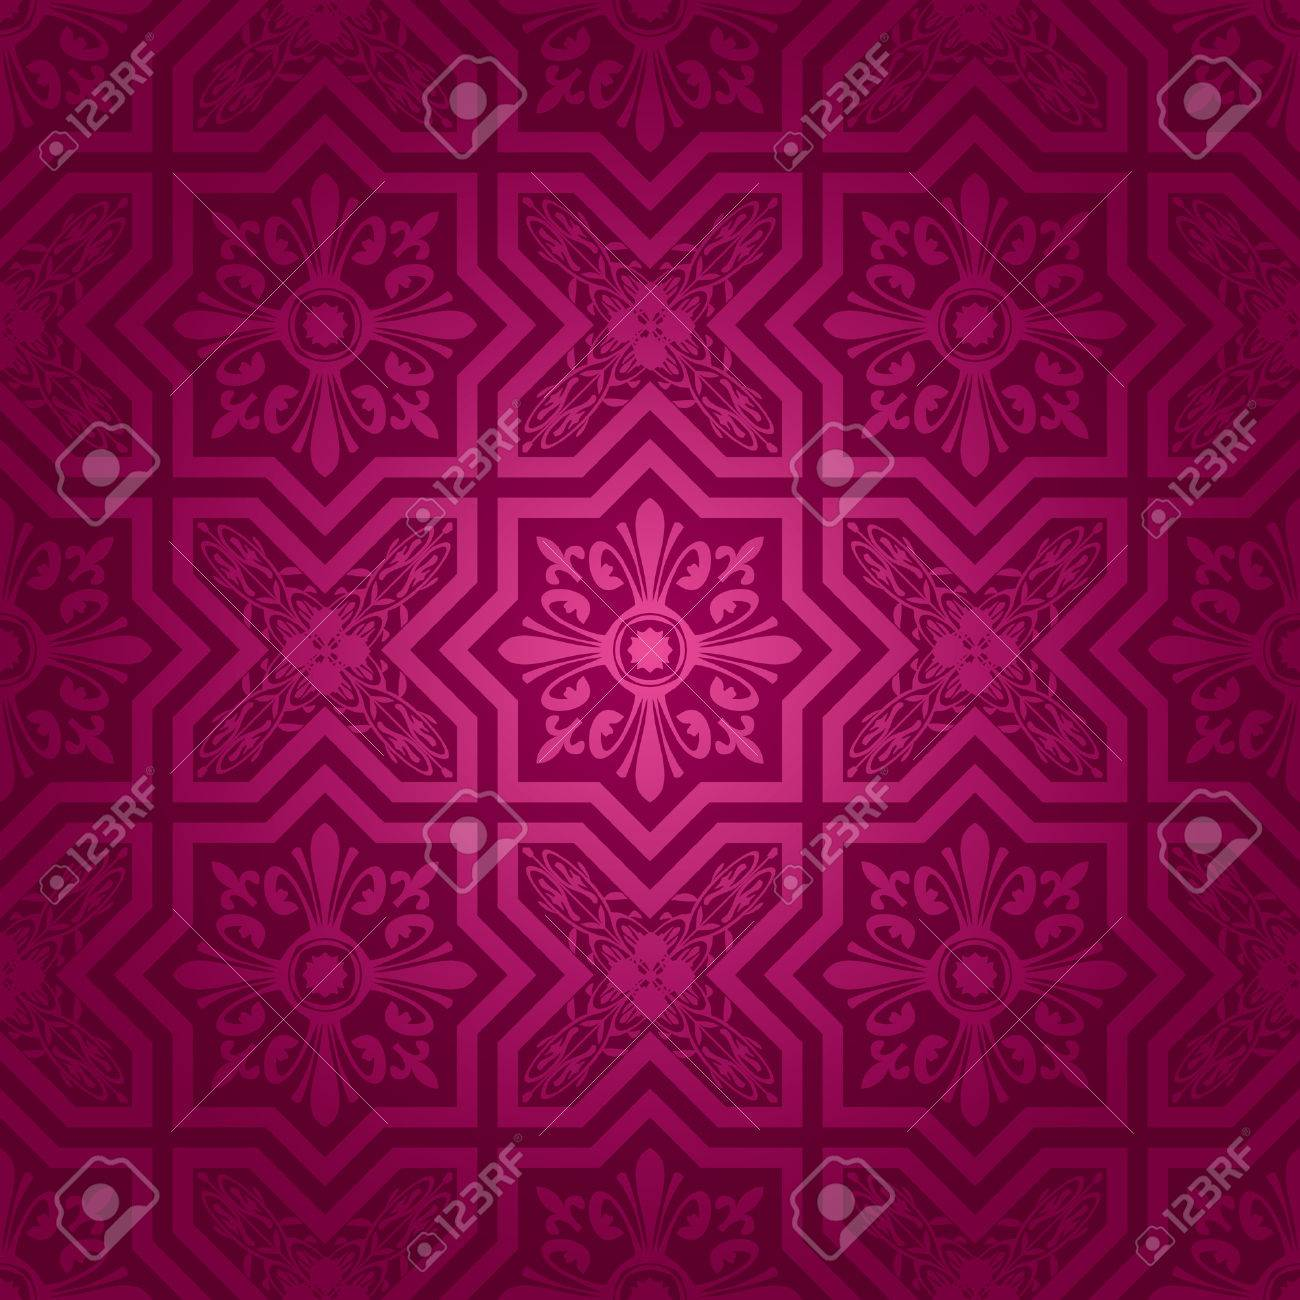 Gothic Pattern Wallpaper seamless gothic wallpaper royalty free cliparts, vectors, and